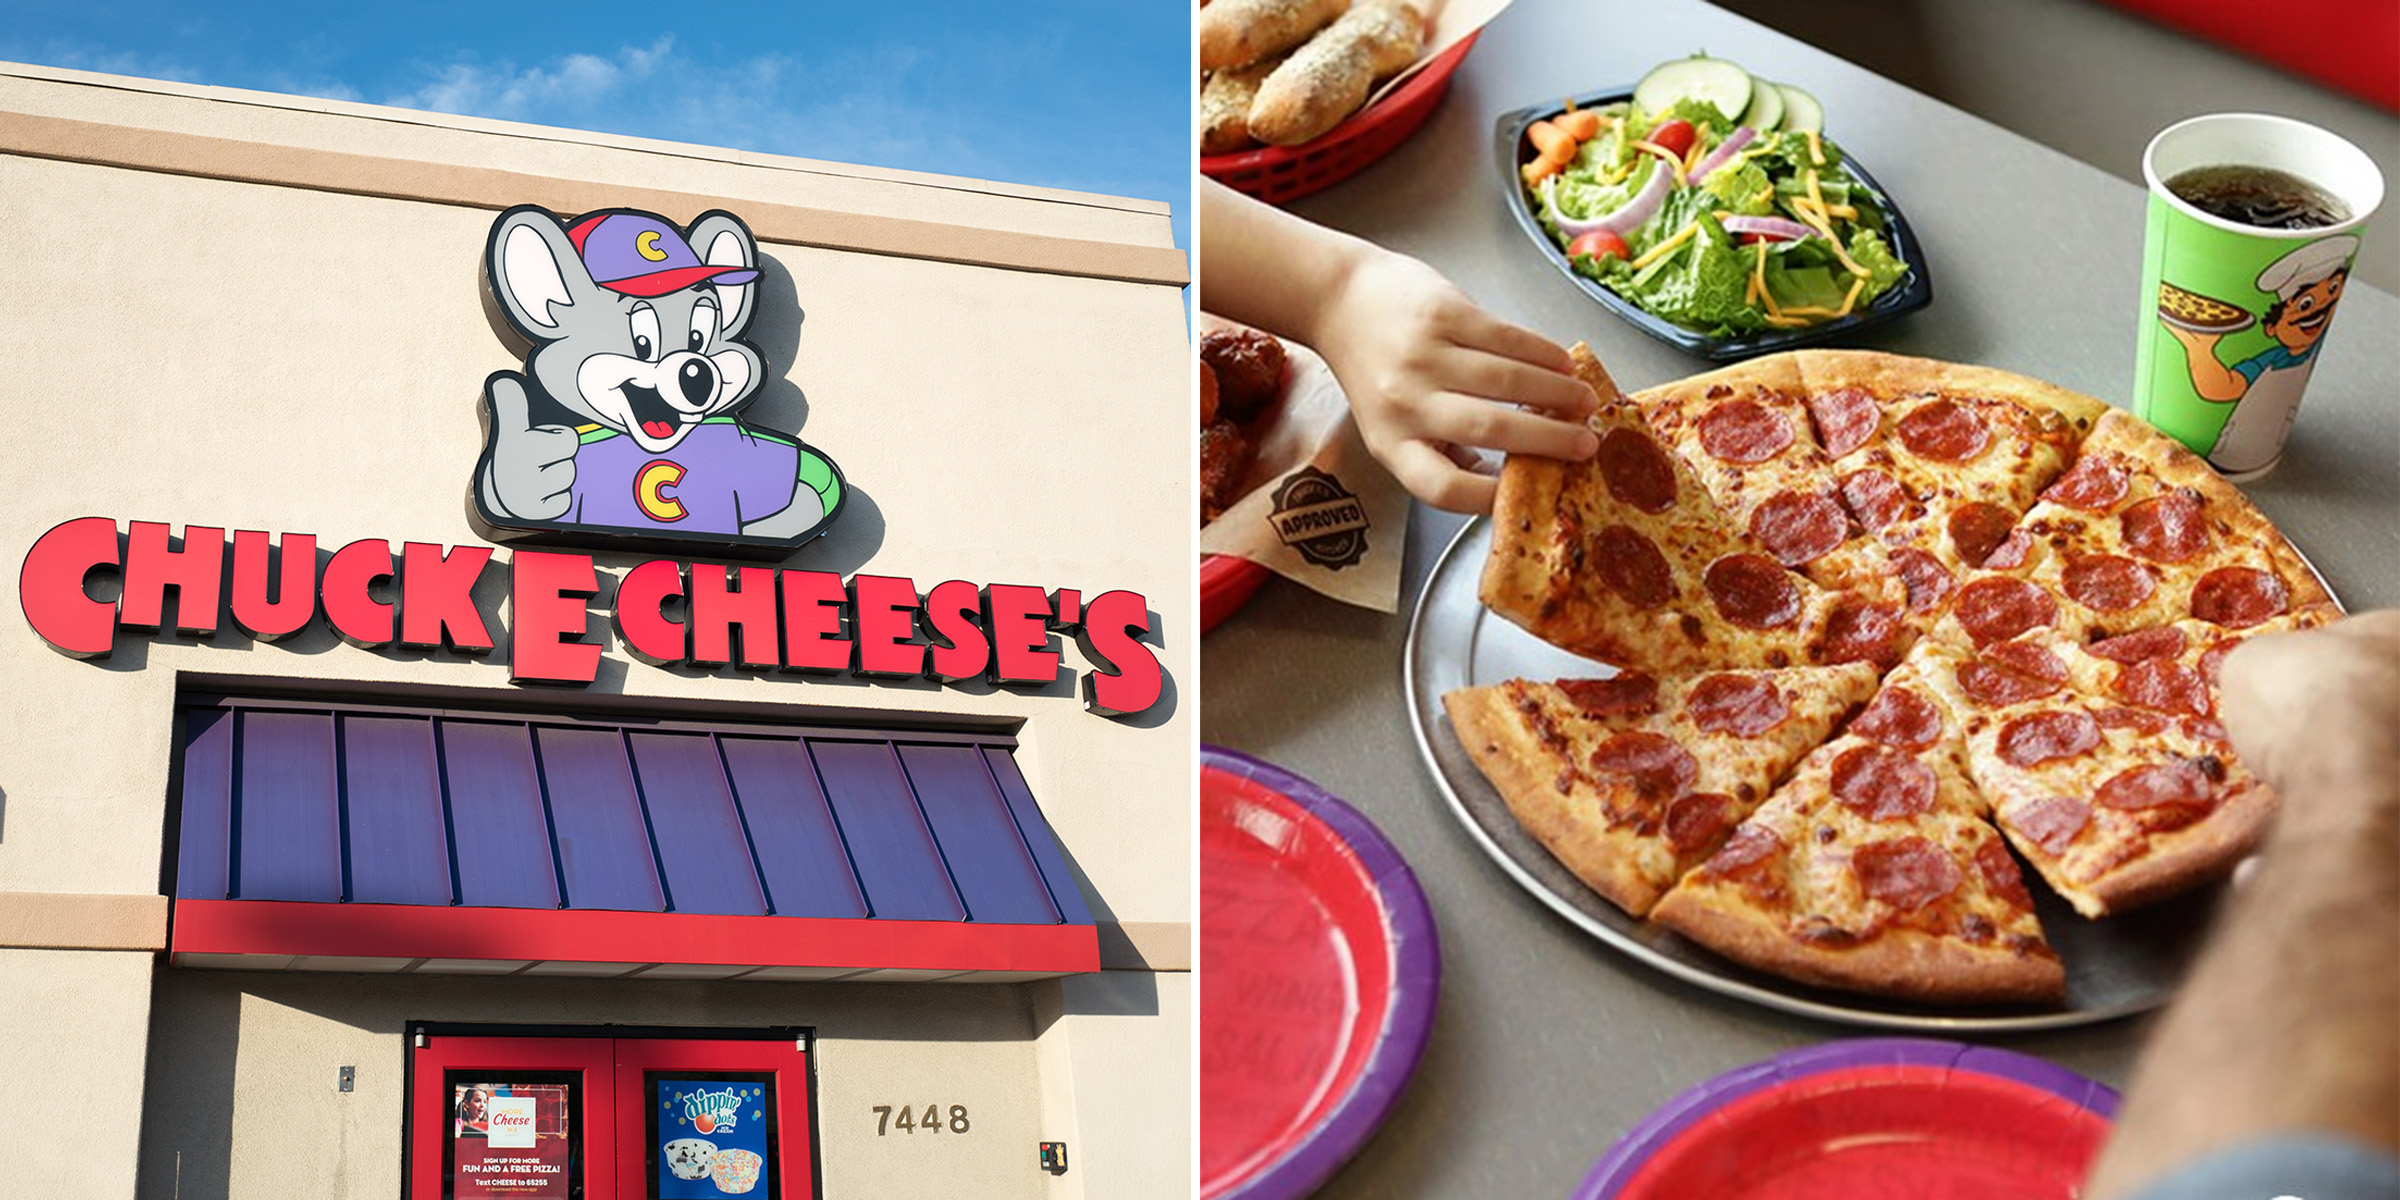 does-chuck-e-cheese-s-recycle-leftover-pizza-kid-friendly-chain-responds-to-myth